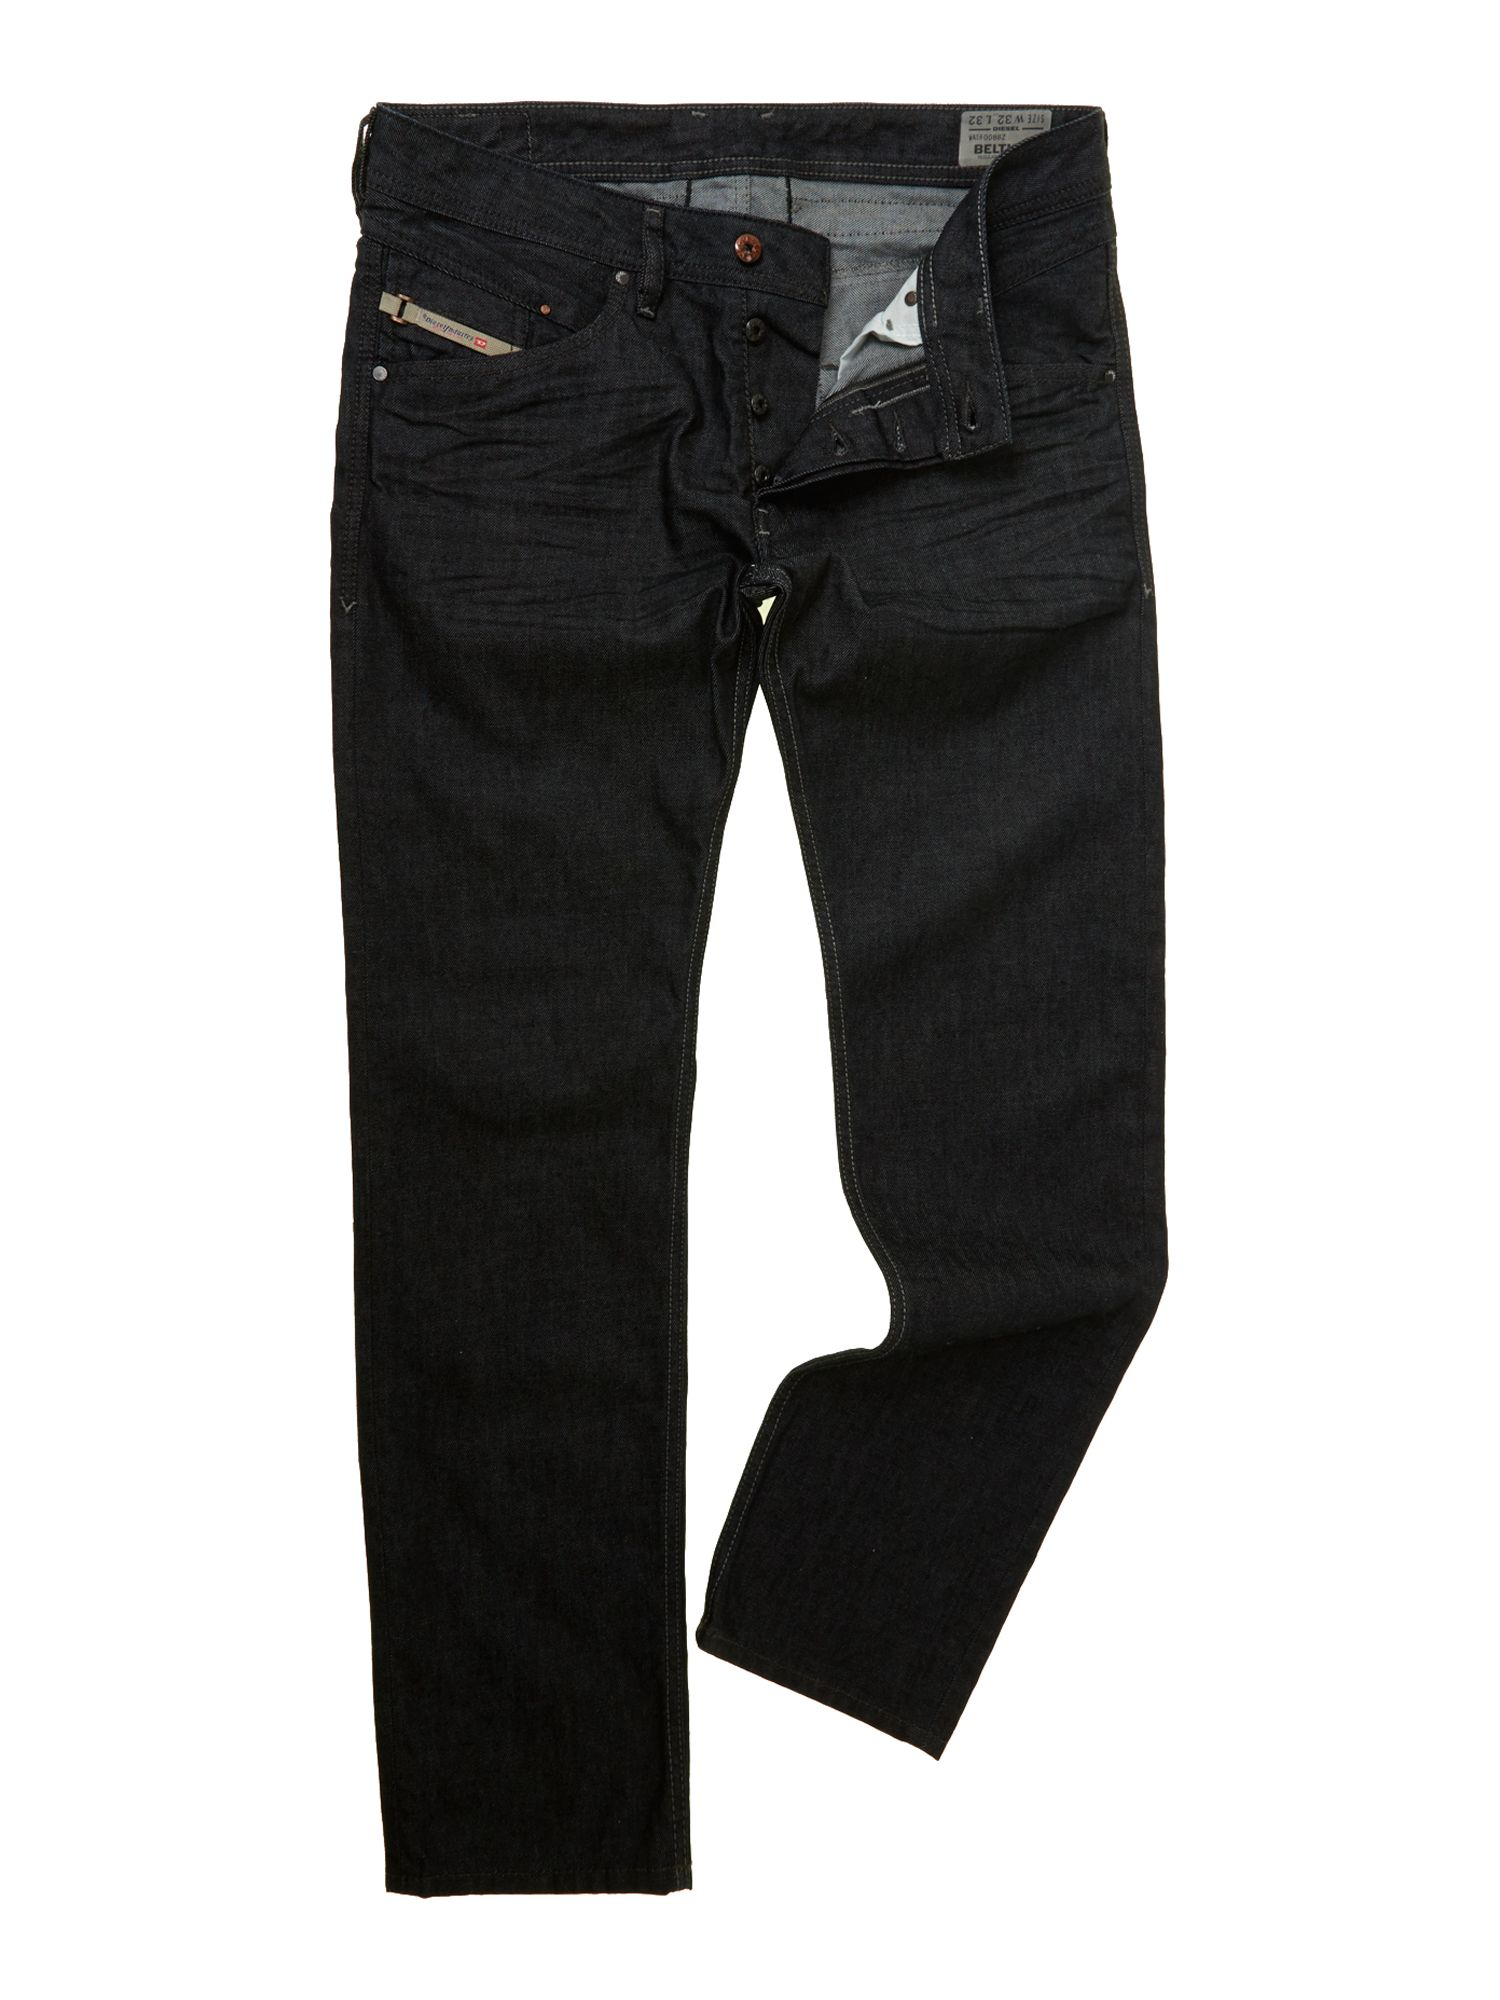 Belther 88Z dark wash jeans